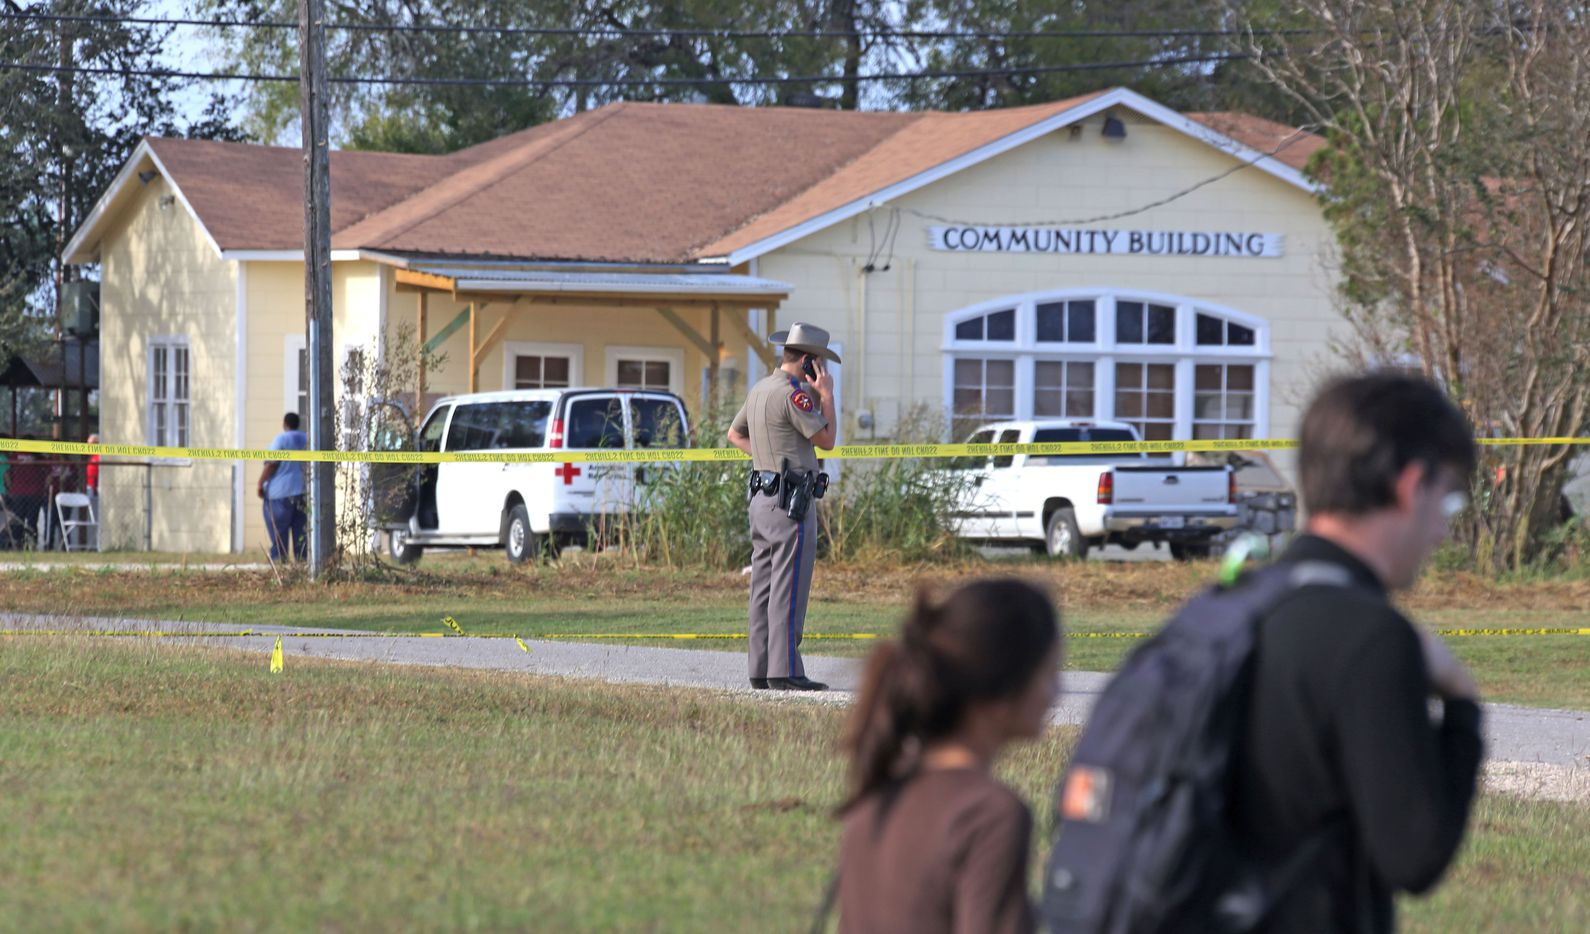 People walk past the community building near the First Baptist Church of Sutherland Springs, Texas. At least 26 people died Sunday after a gunman opened fire at a Baptist church in the small town southeast of San Antonio. Photographed on Monday, November 6, 2017. (Louis DeLuca/The Dallas Morning News)